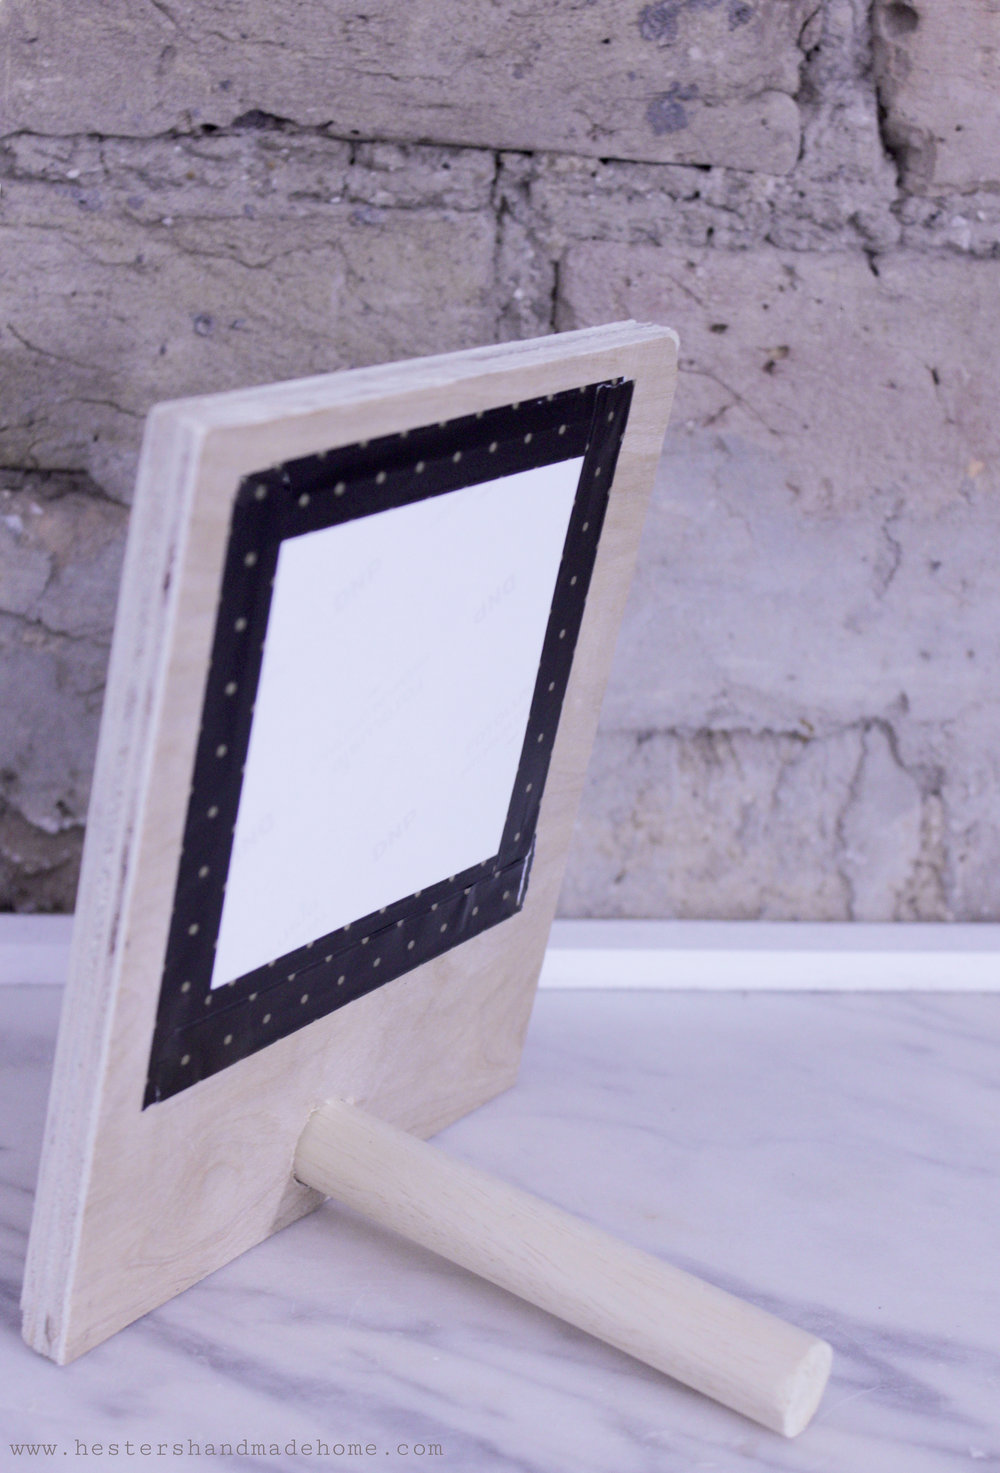 Make a frame for your instagram shots, tutorial by www.hestershandmadehome.com